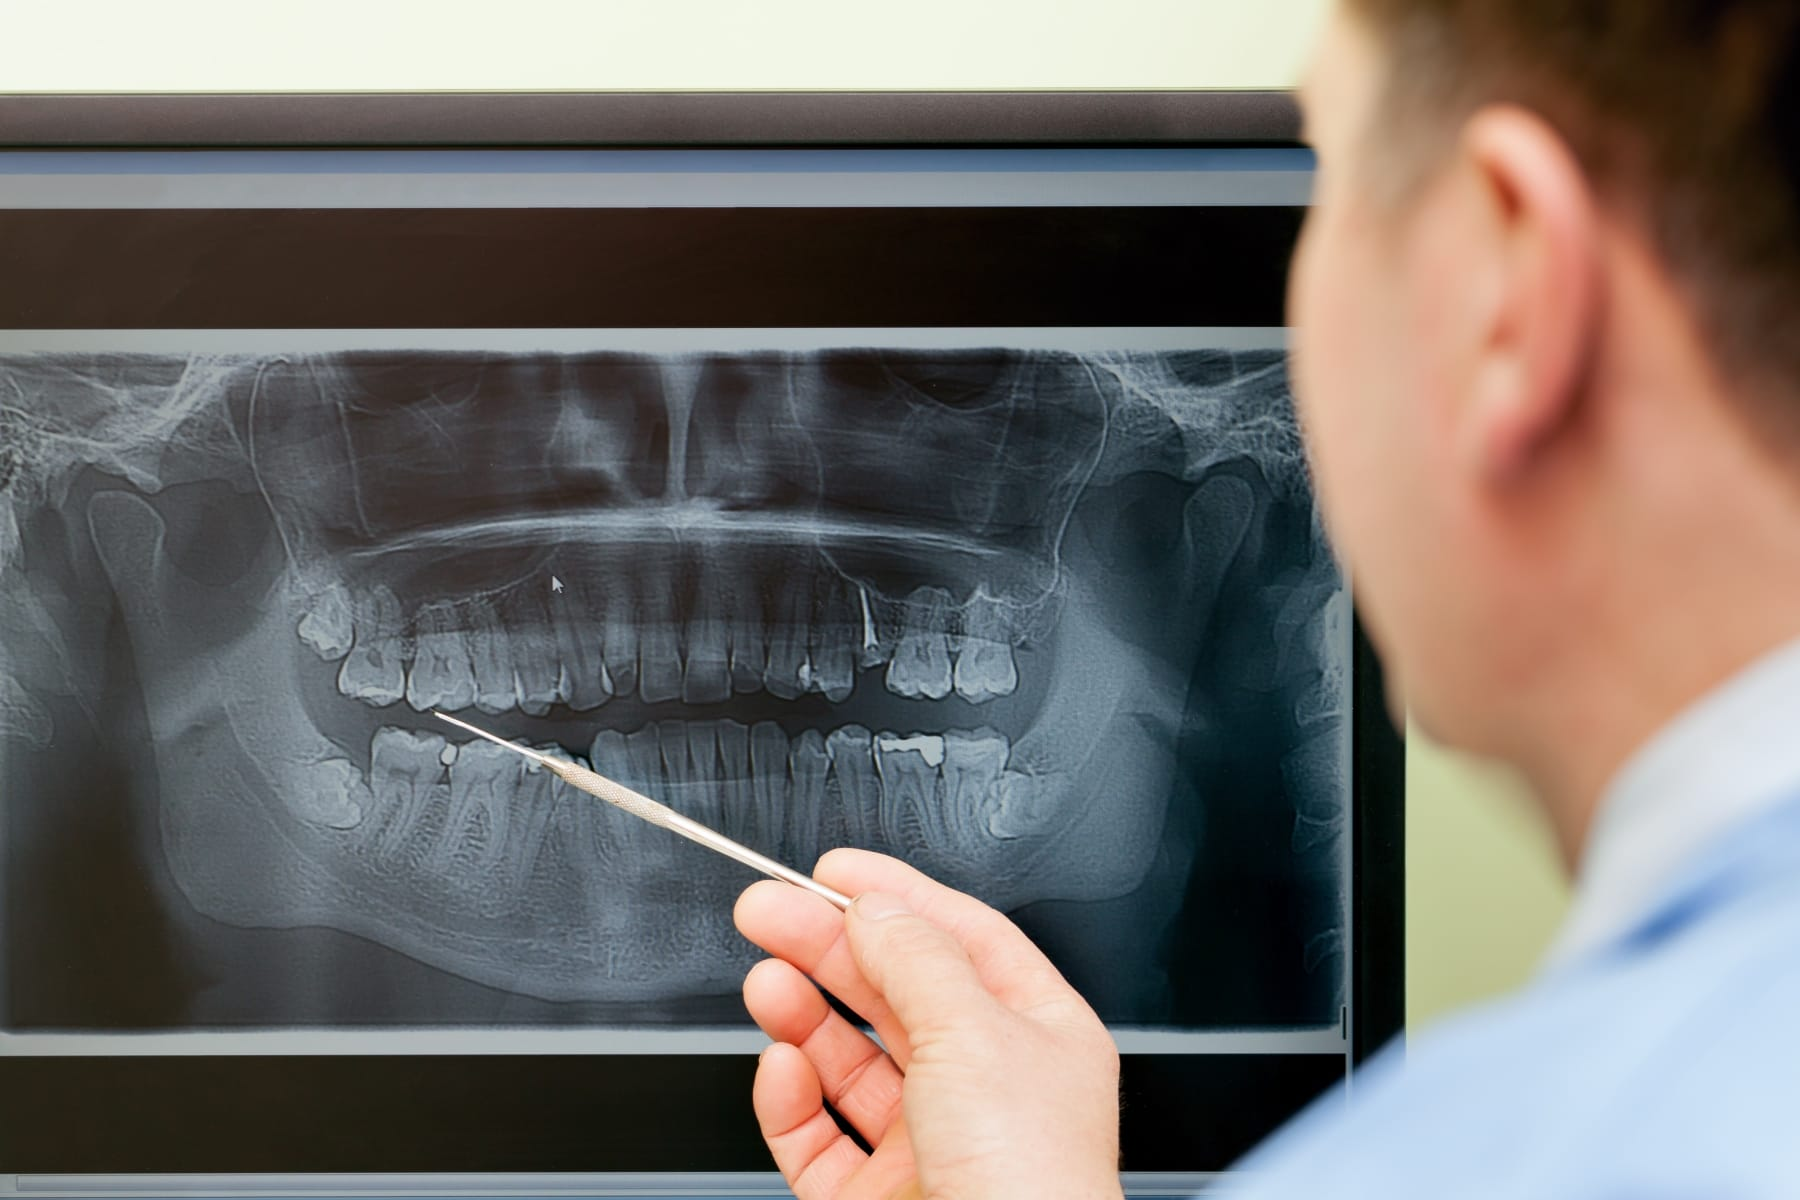 Extraction of wisdom teeth - Implantology and surgery - CDBPA